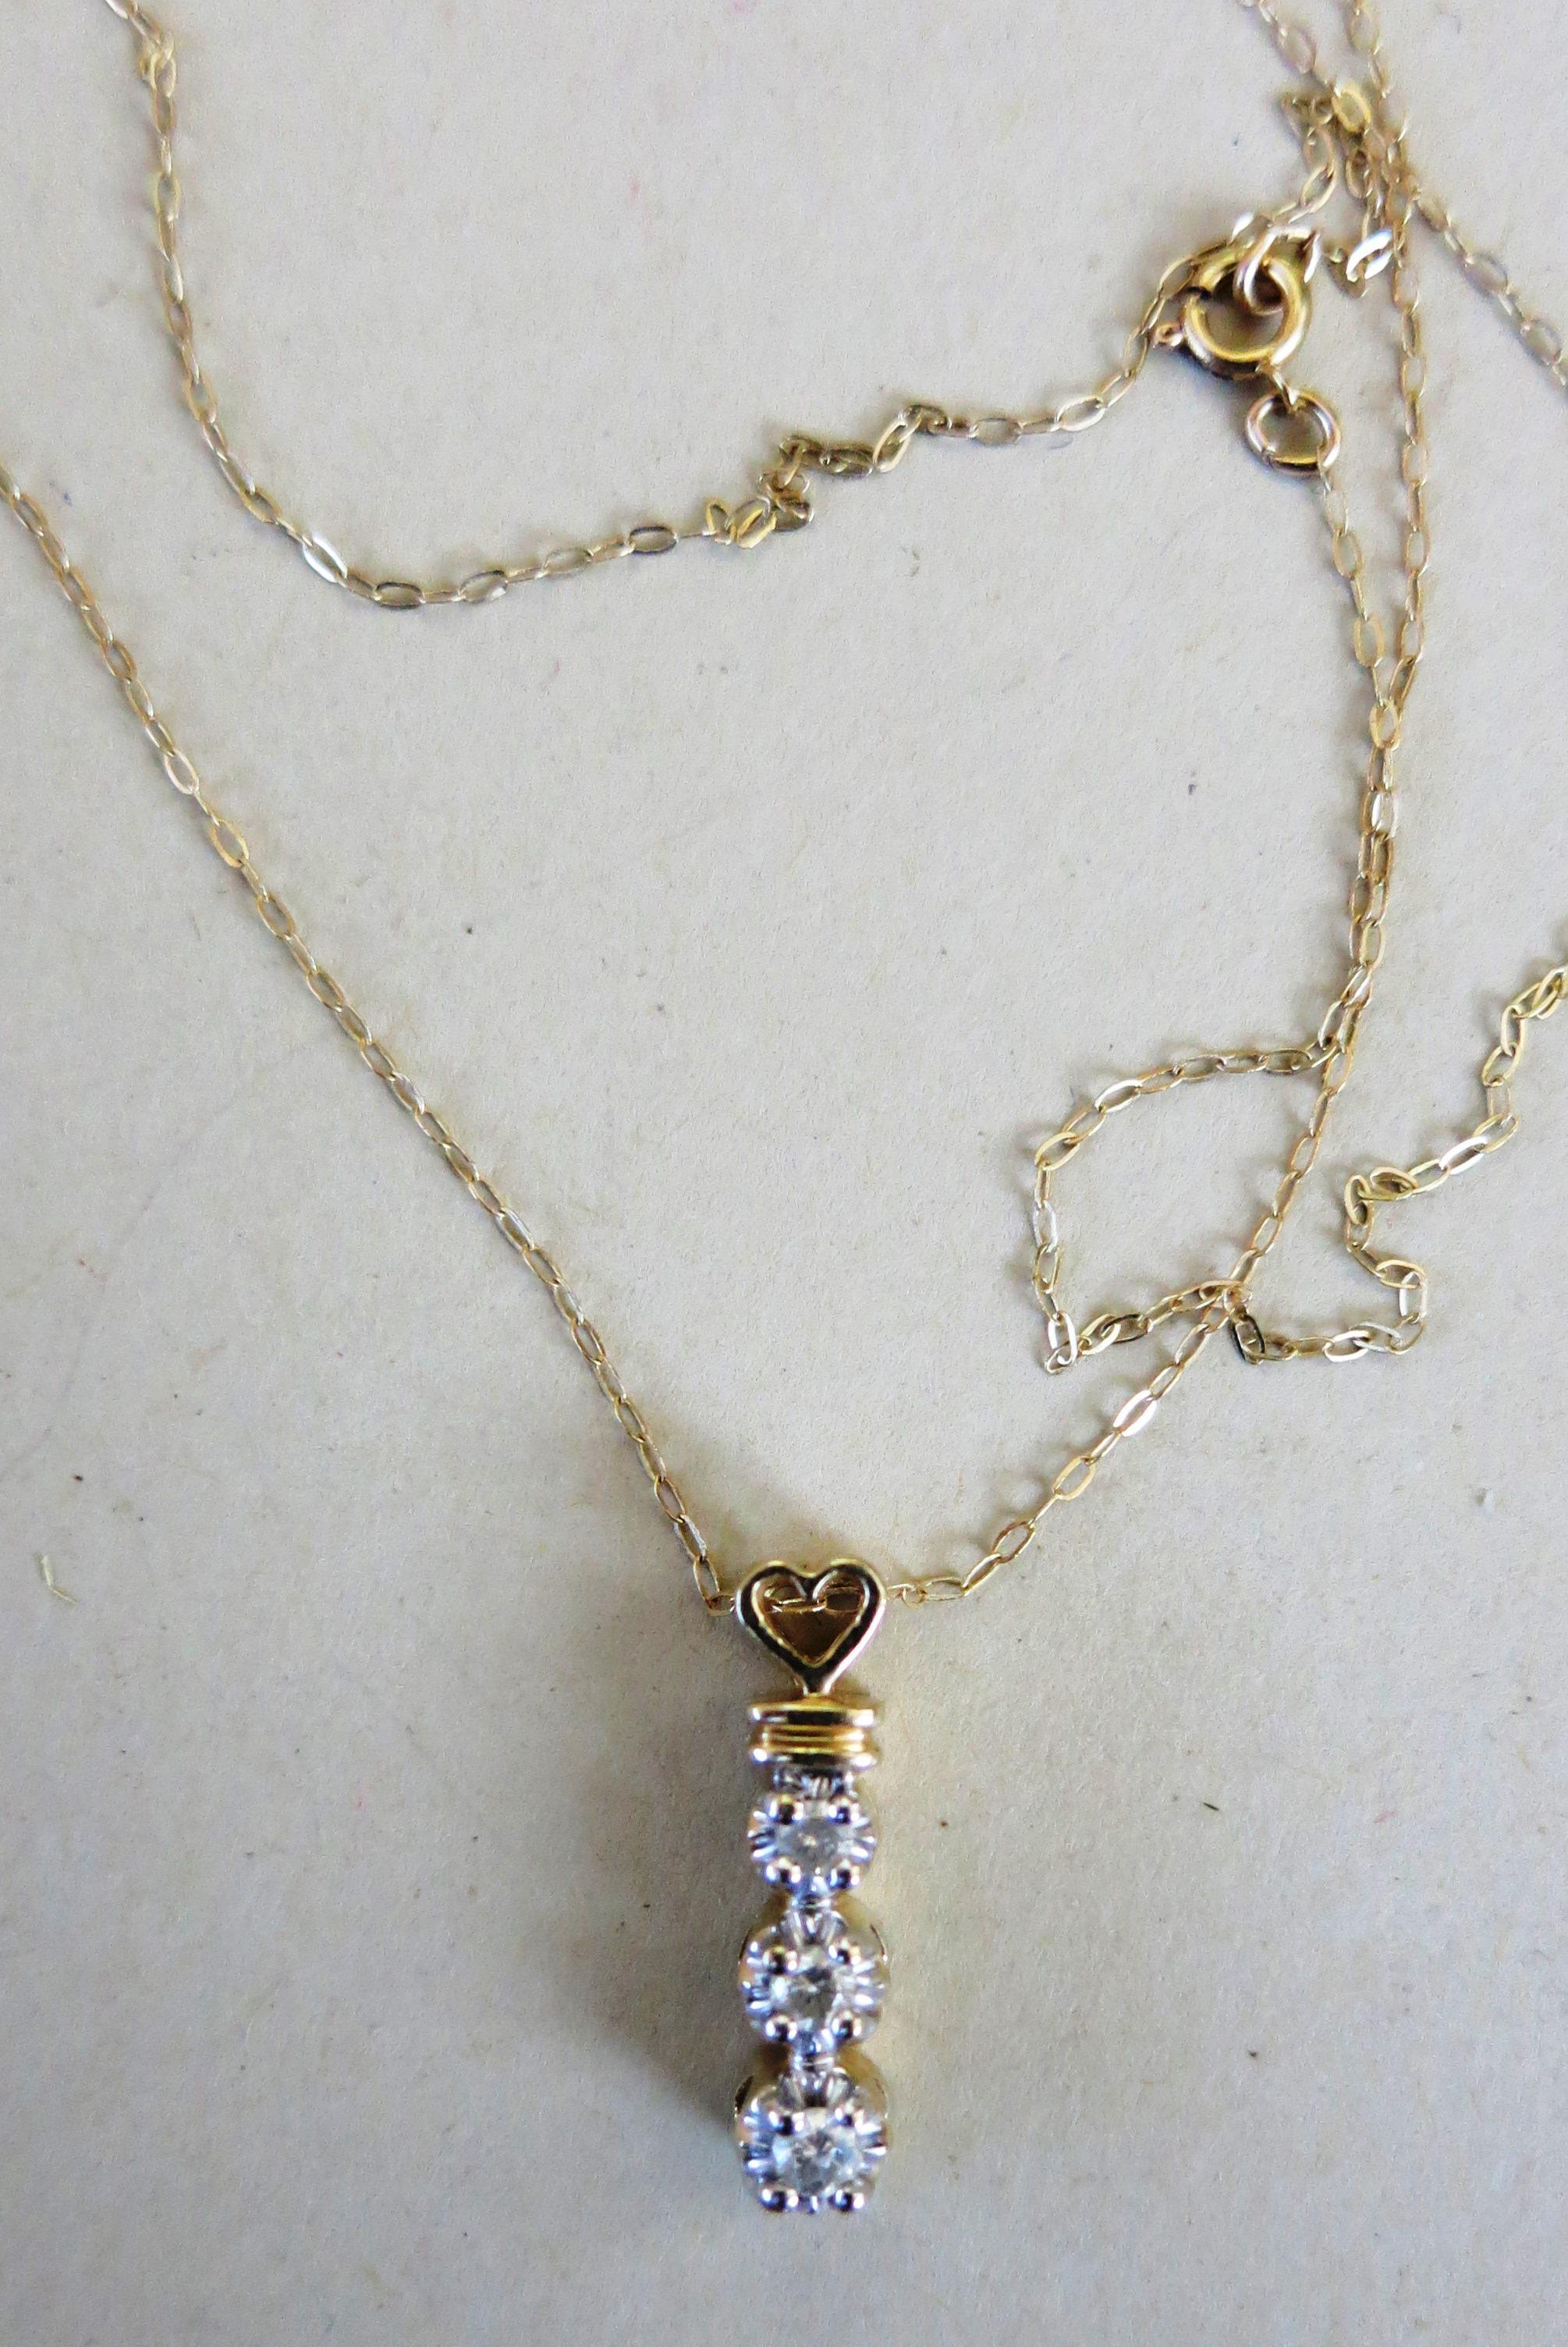 VINTAGE 10k Gold Chain and Pendant  Three Diamonds   17 Inch Chain